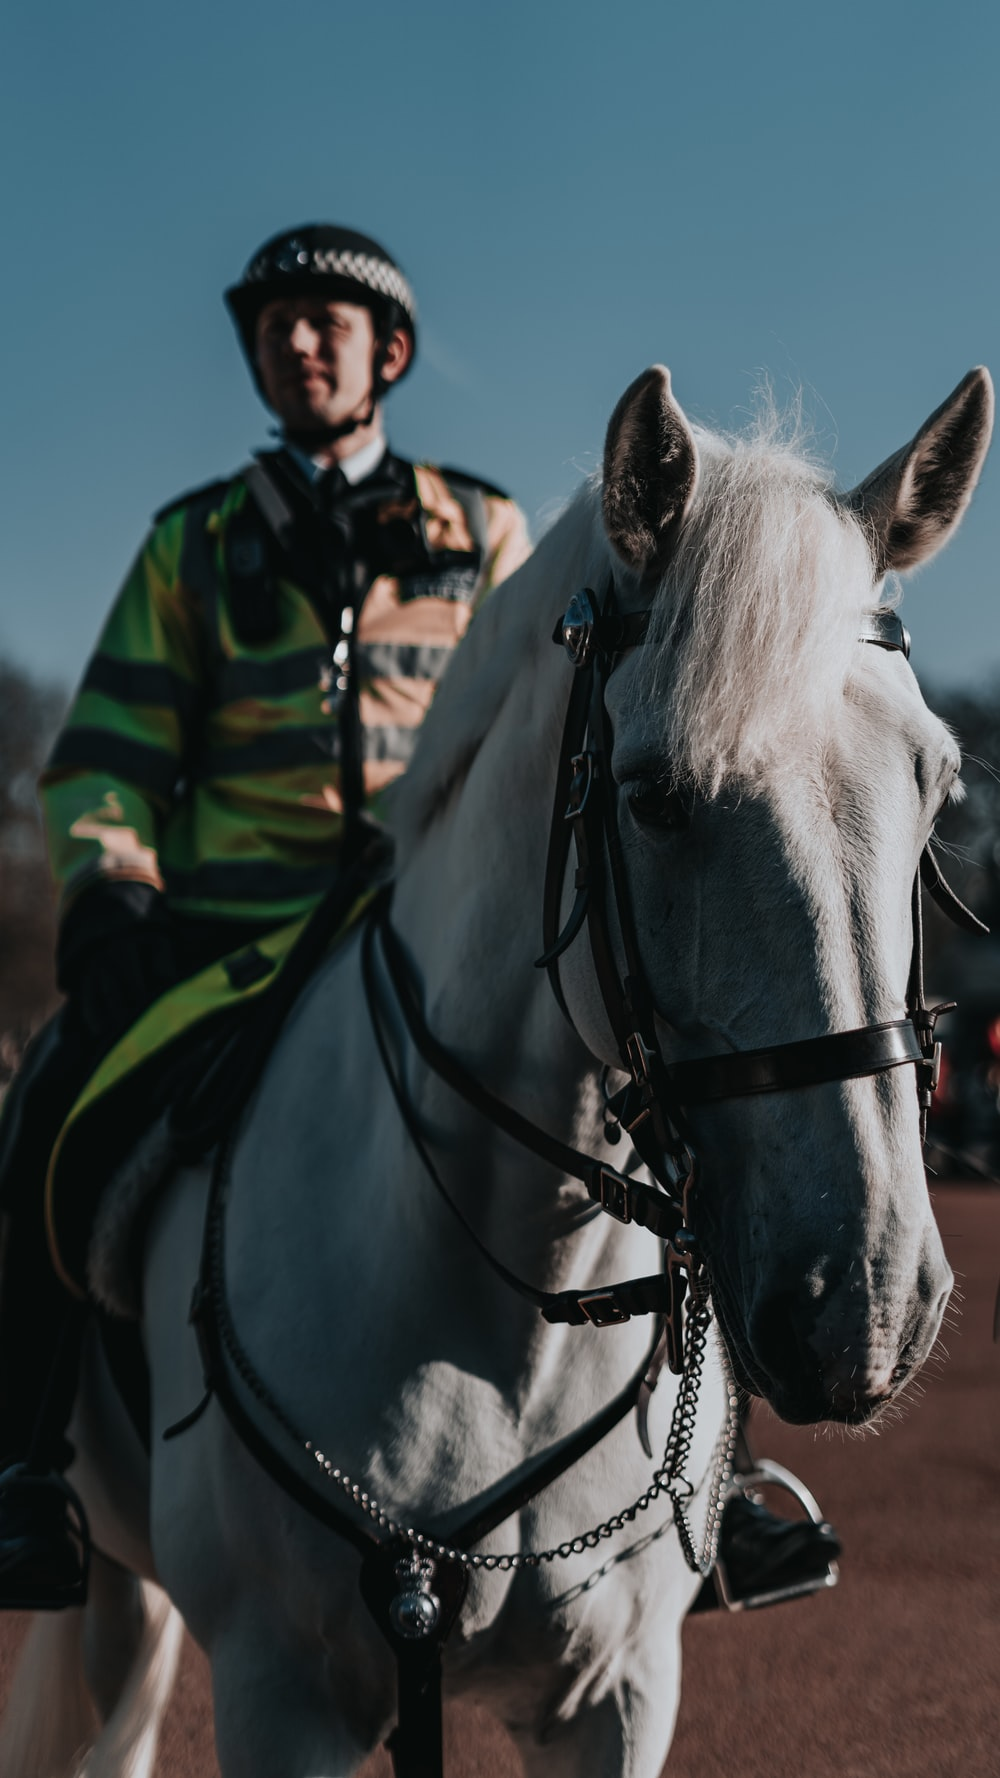 man in green and black striped long sleeve shirt riding white horse during daytime